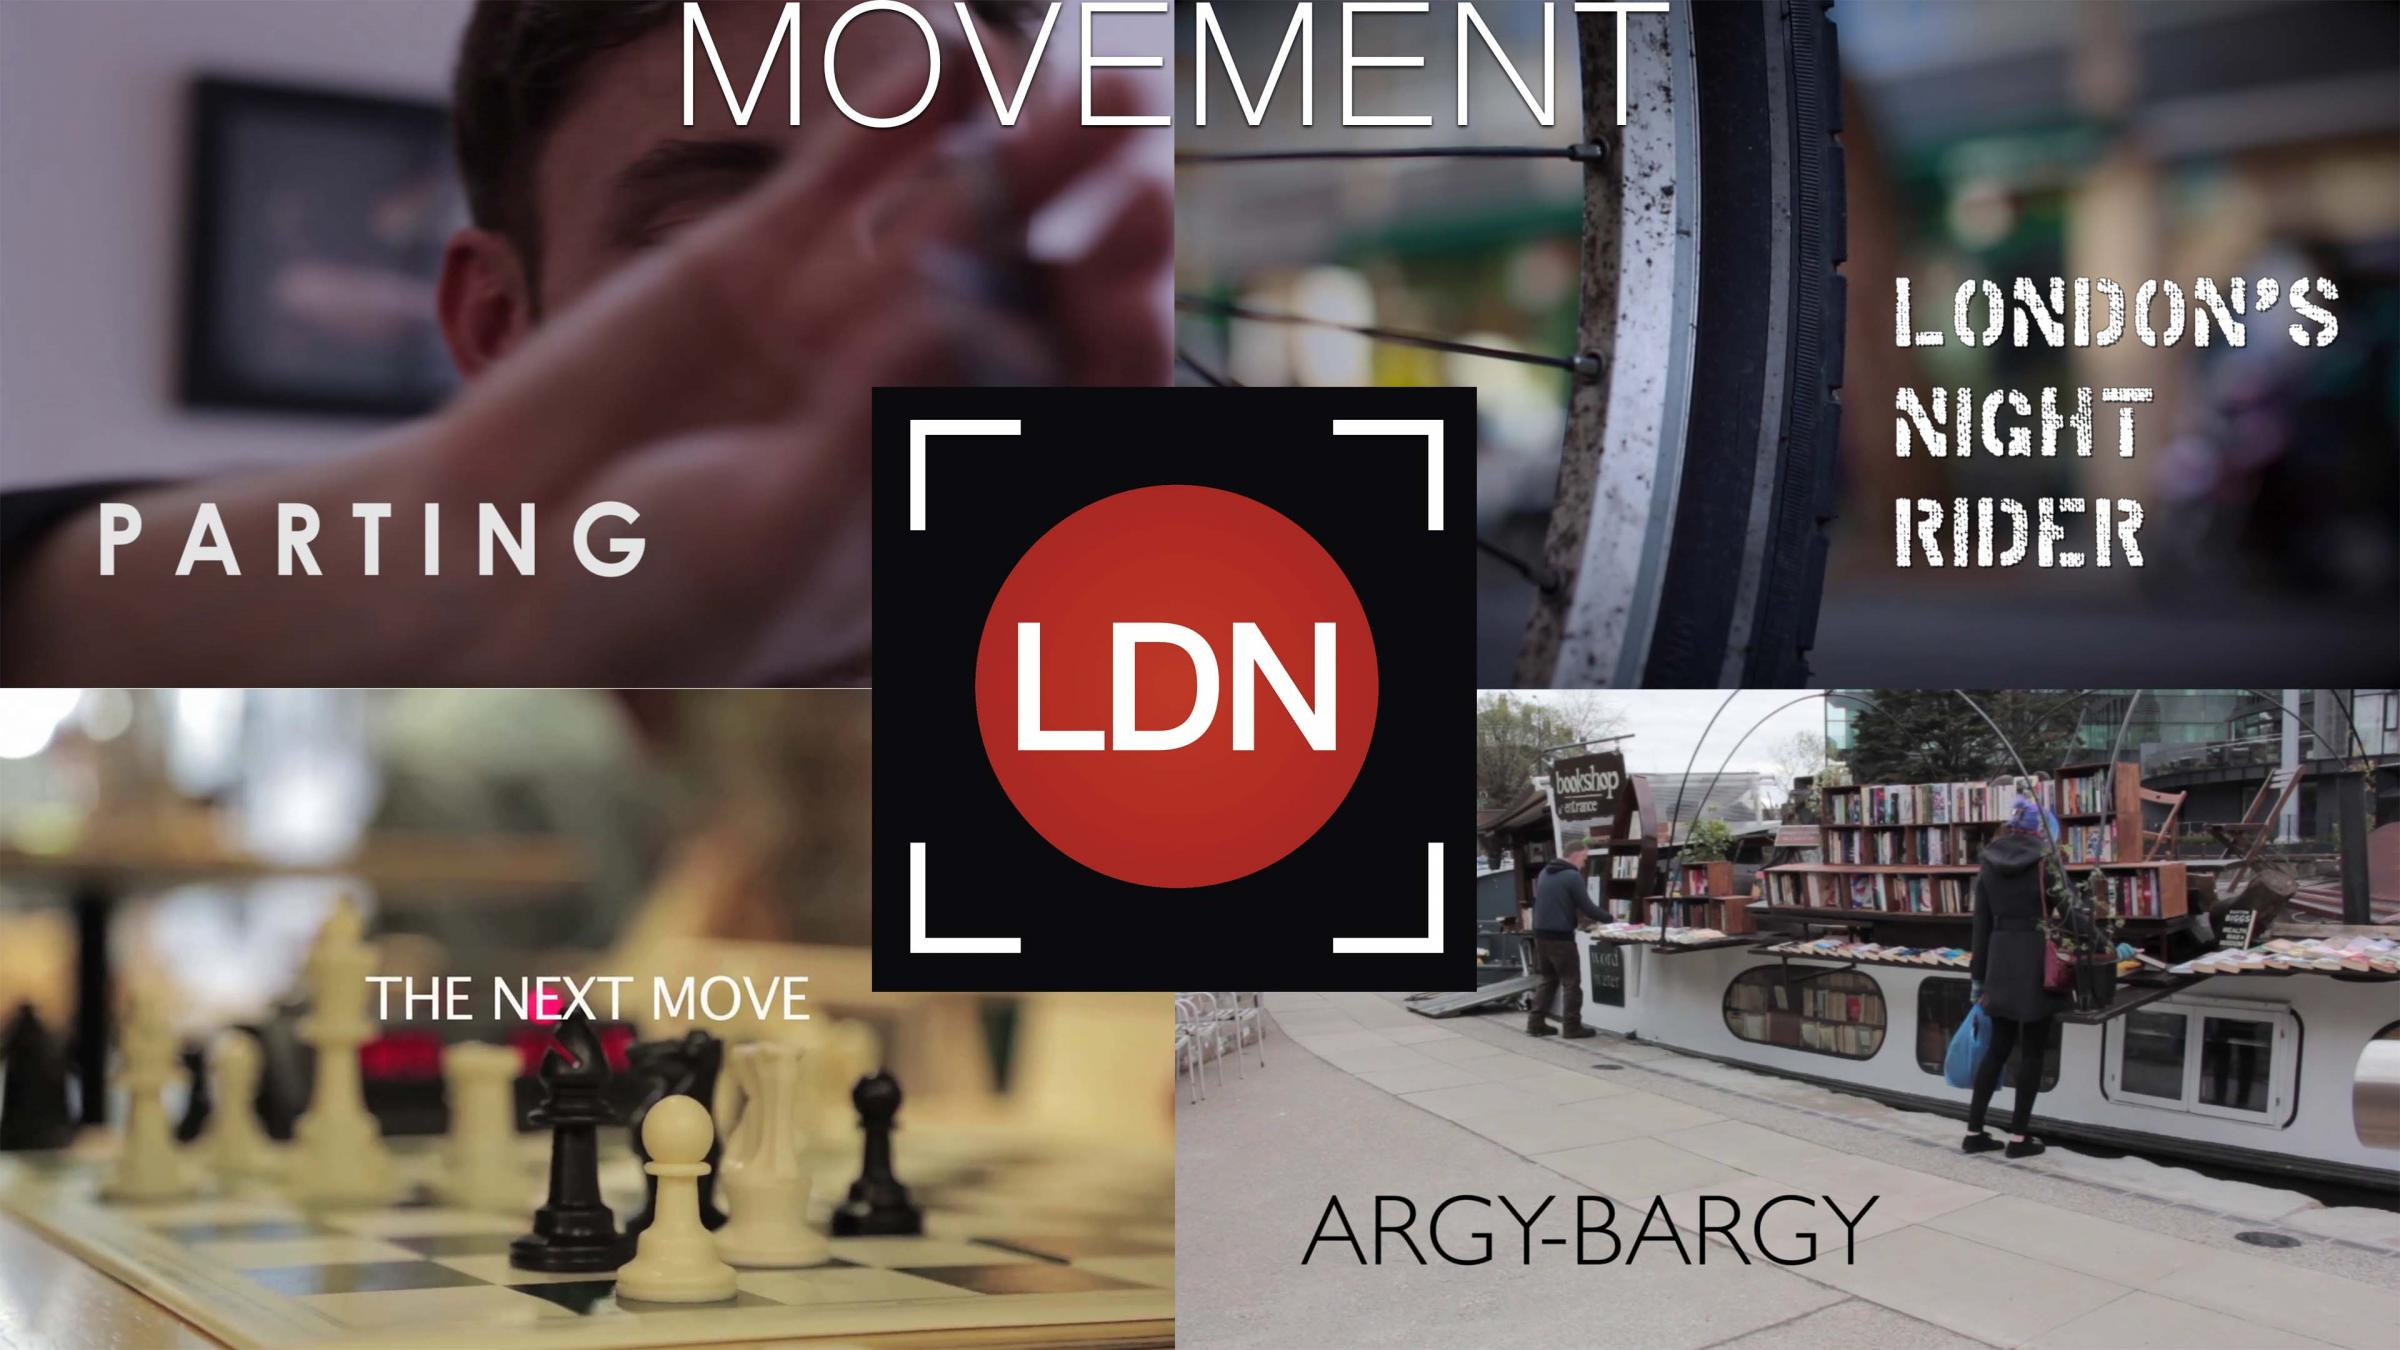 London Documentary Network presents 'MOVEMENT'